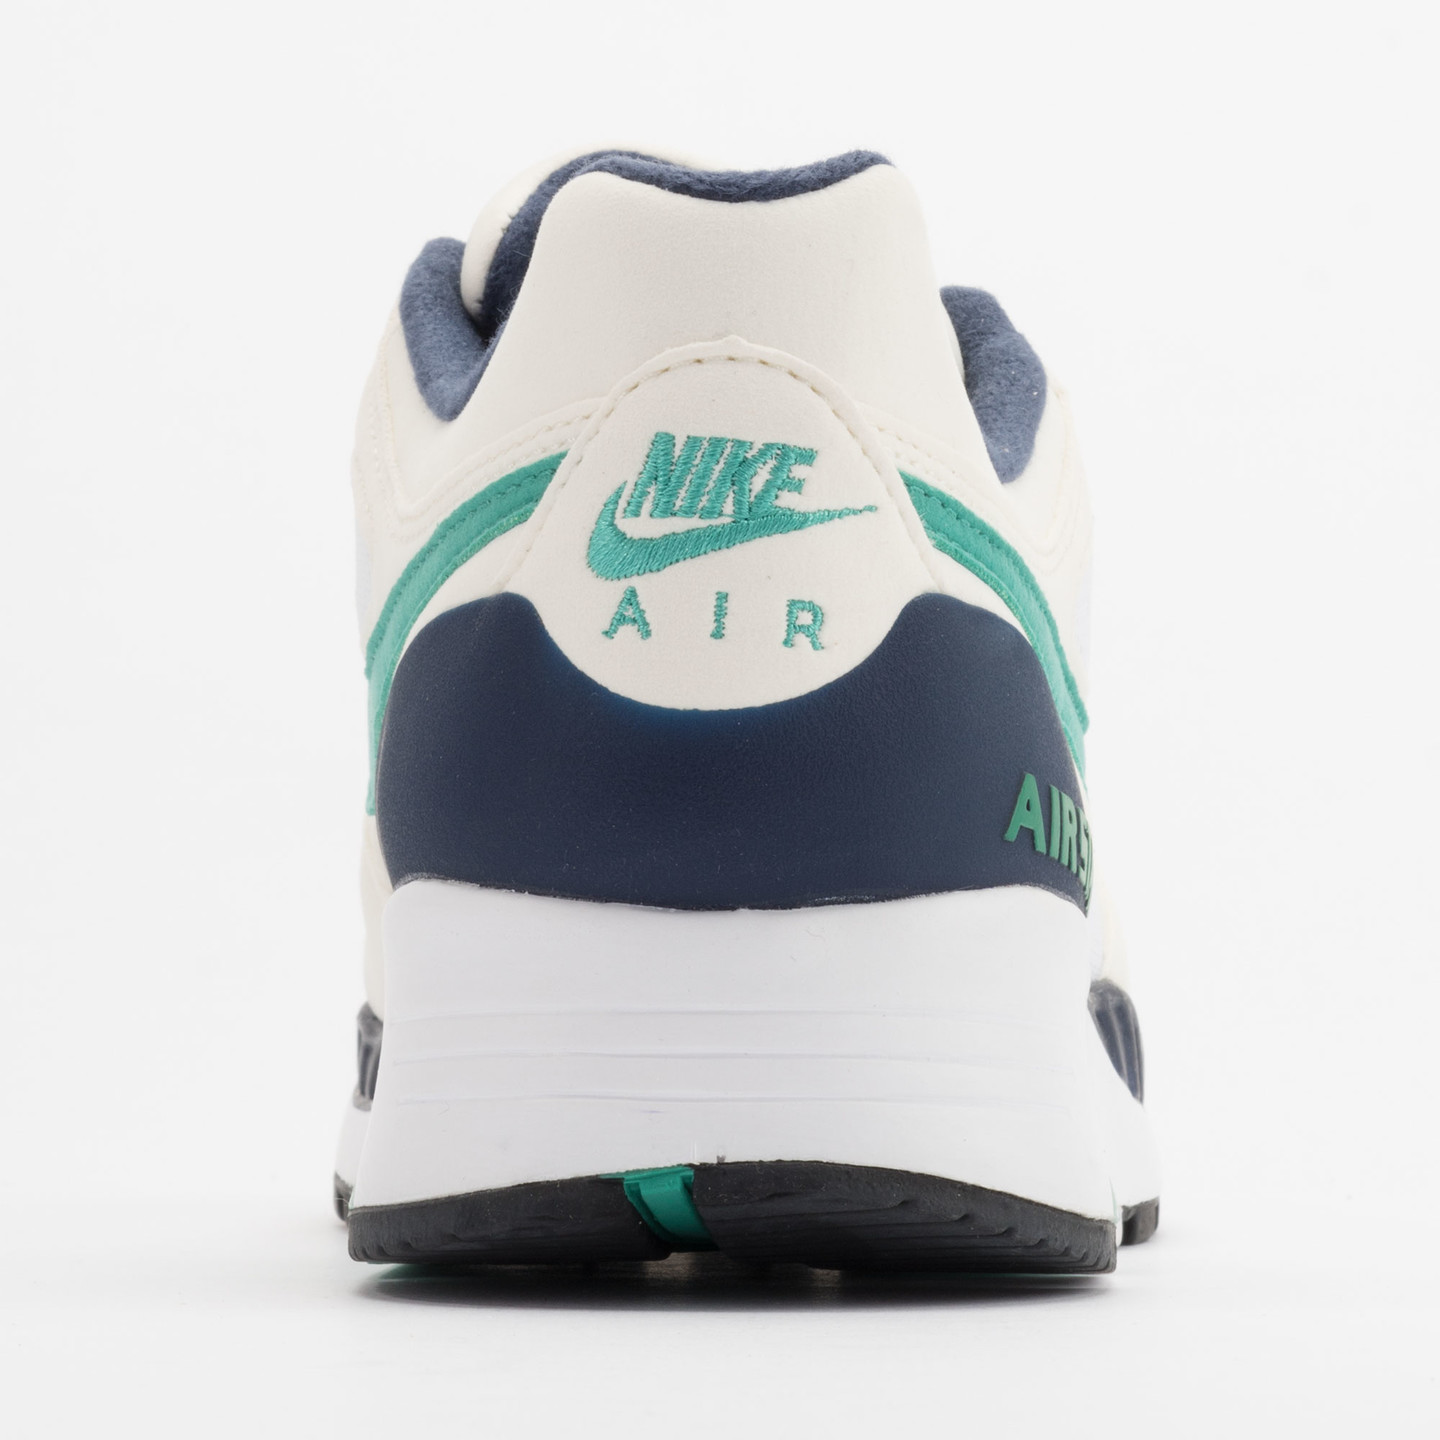 Nike Air Stab White/Emerald Green-Sl-Mid Nvy 312451-100-44